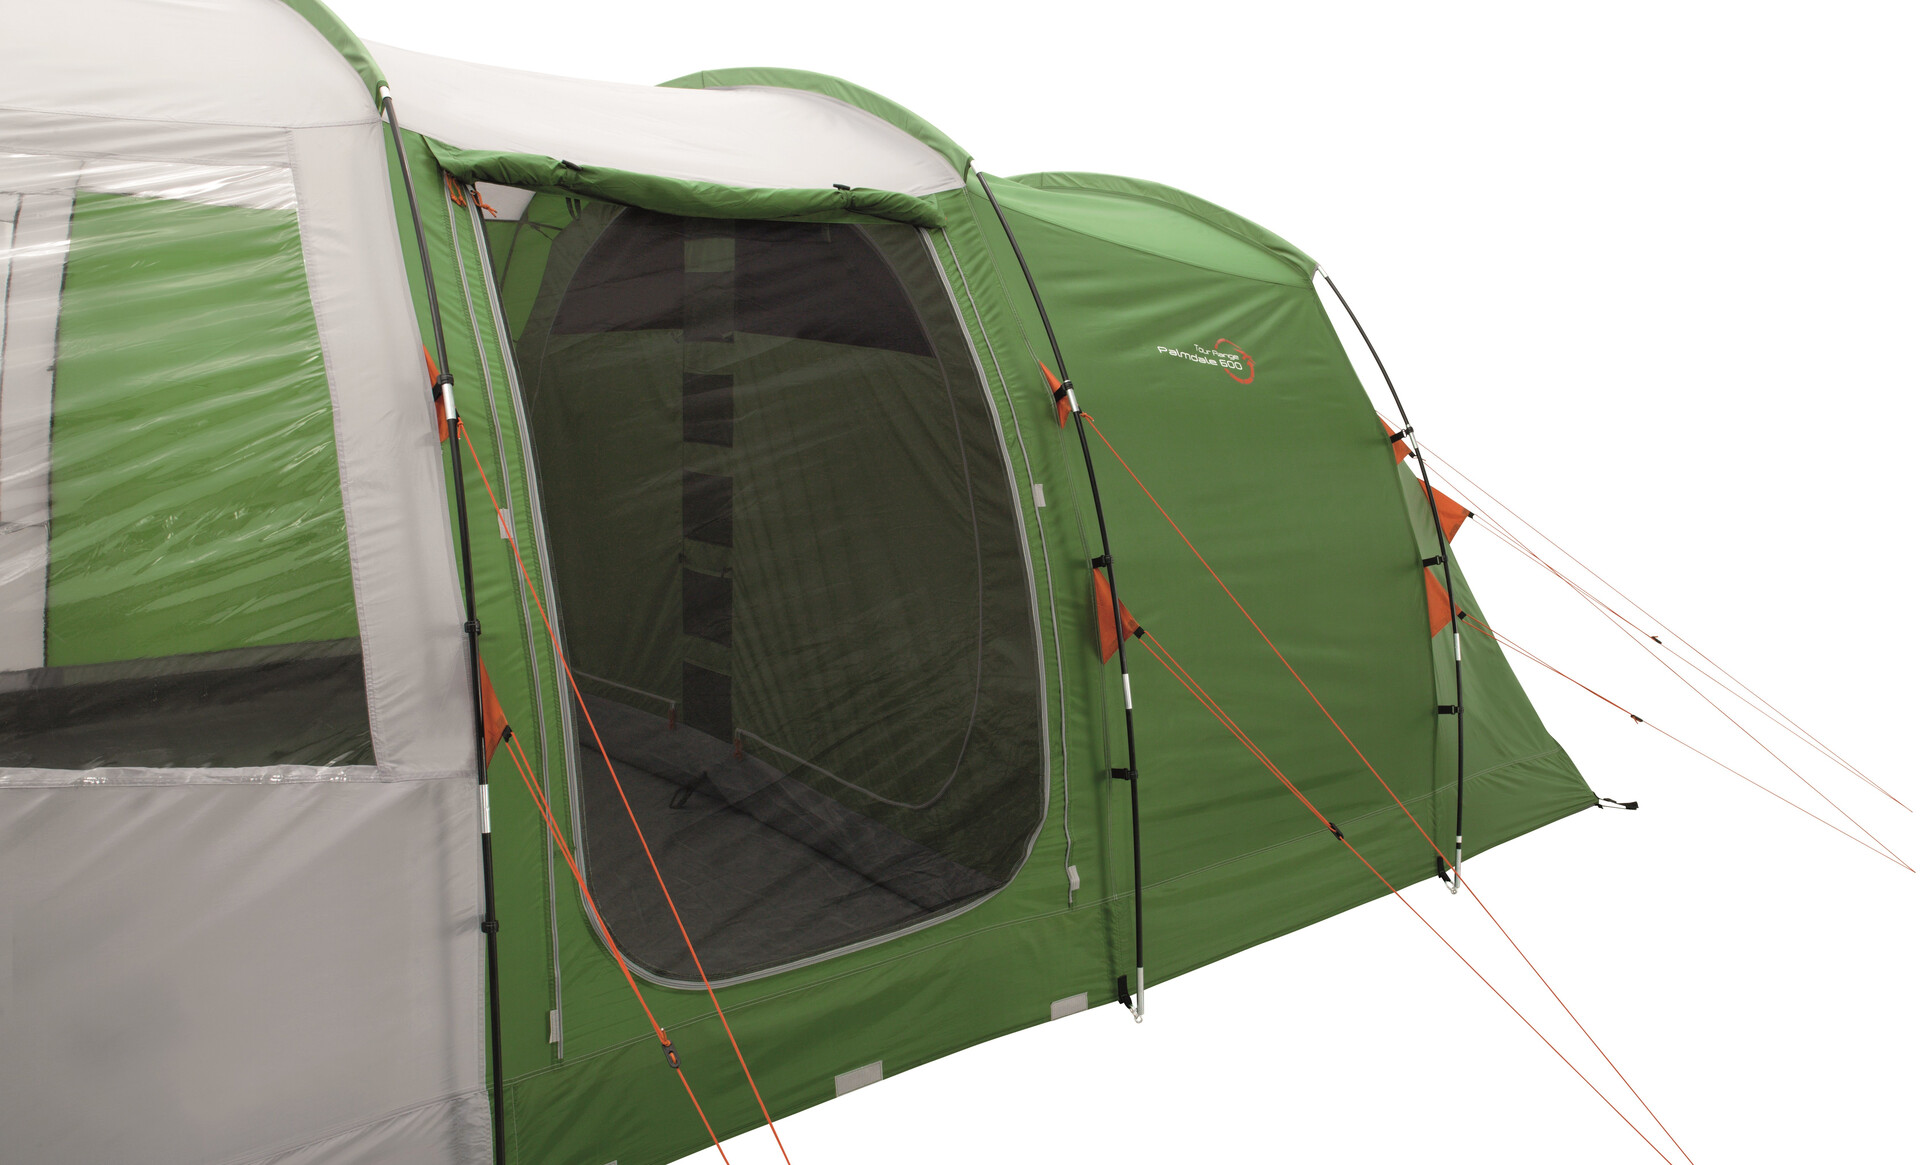 Easy Camp Palmdale 600 Tent greenlight grey | Gode tilbud